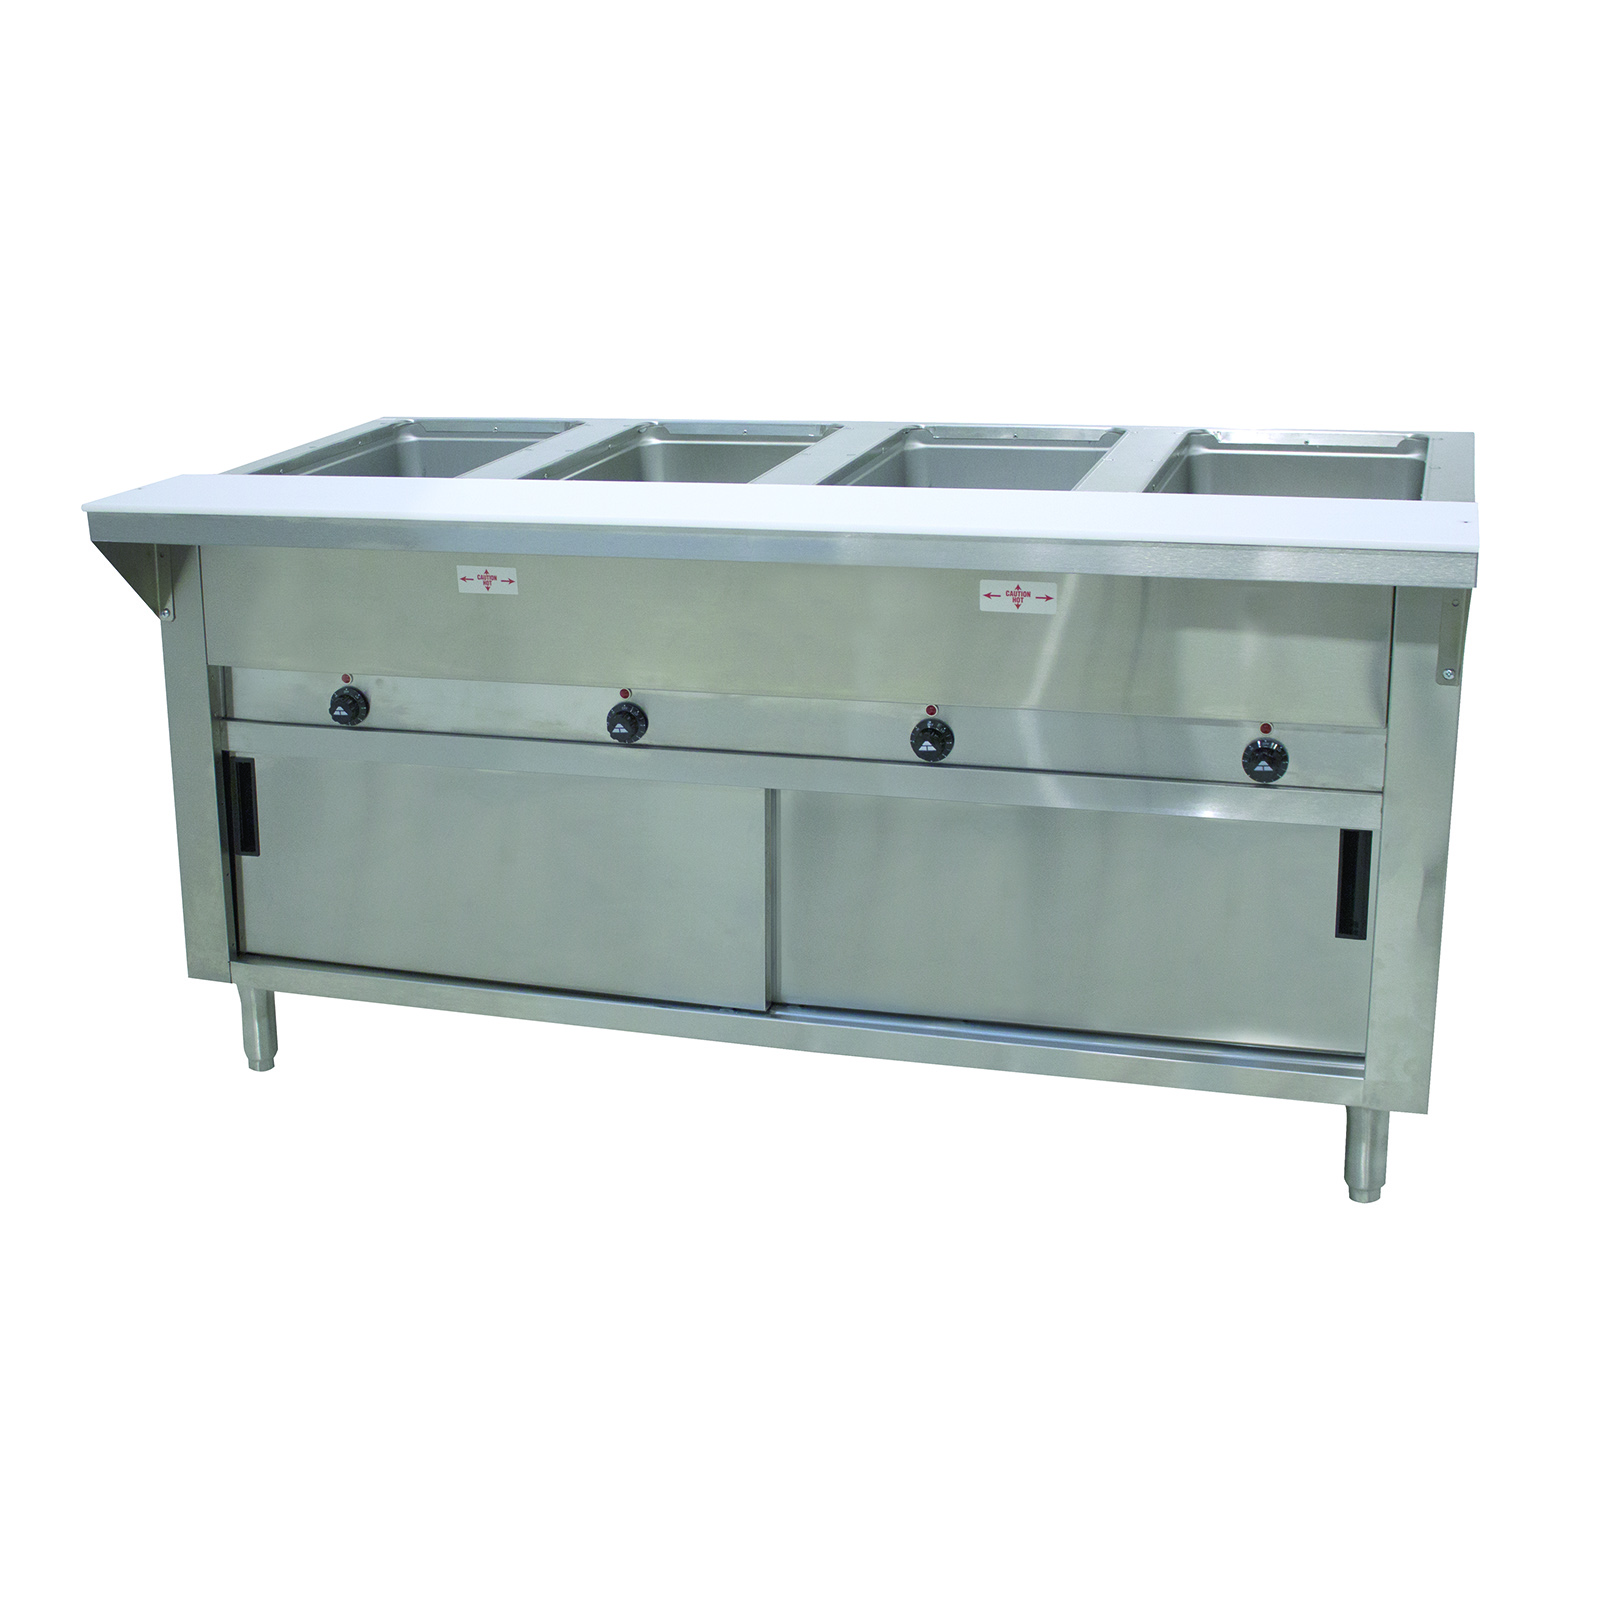 Advance Tabco HF-4E-120-DR serving counter, hot food, electric